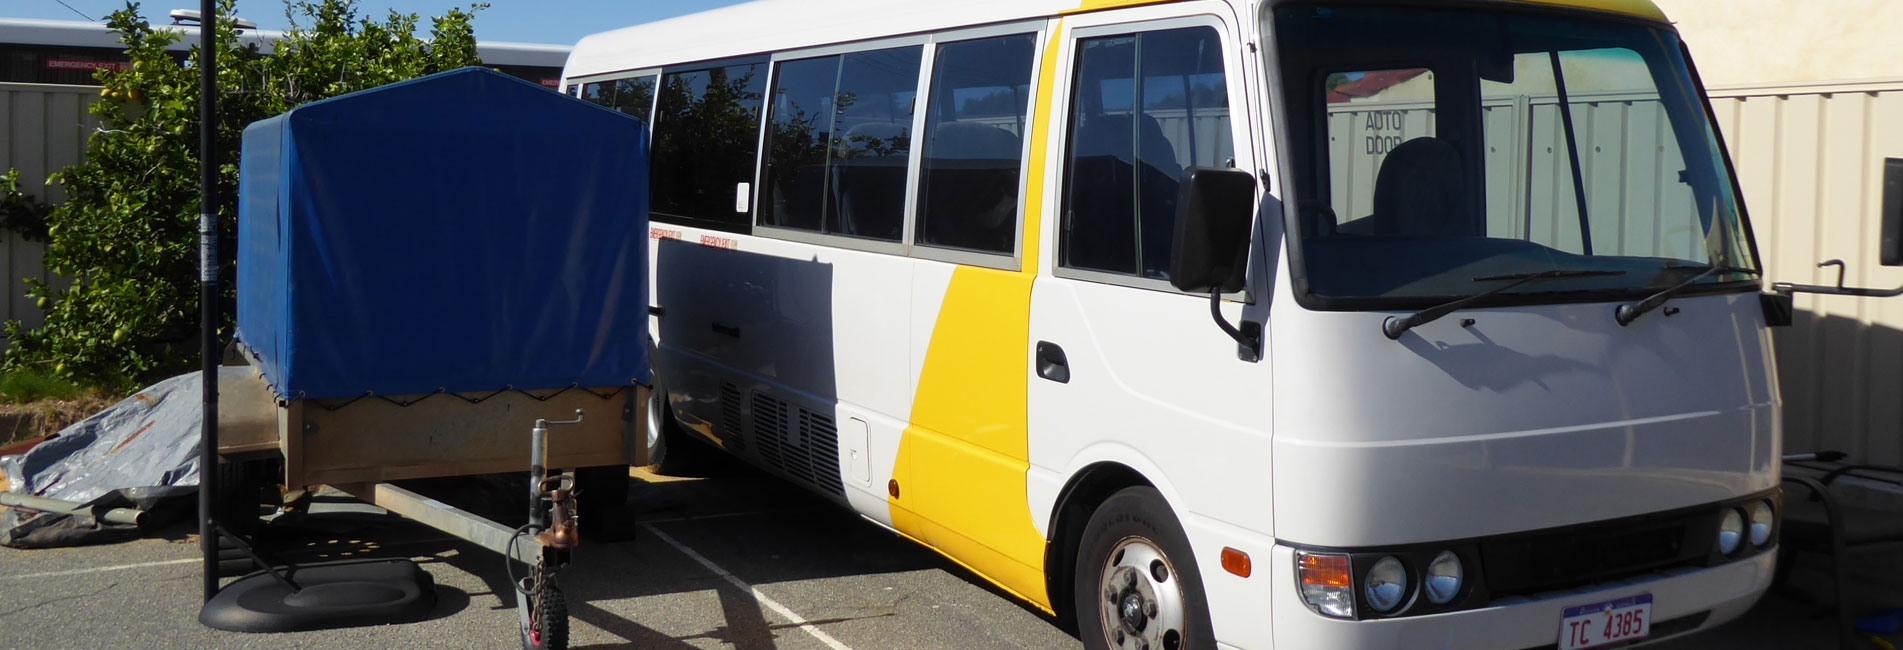 Bus Charters Baldivis, Excursions Kwinana, Winery Tours Wooroloo, Charter Buses Joondalup, Private Bus Service Mandurag